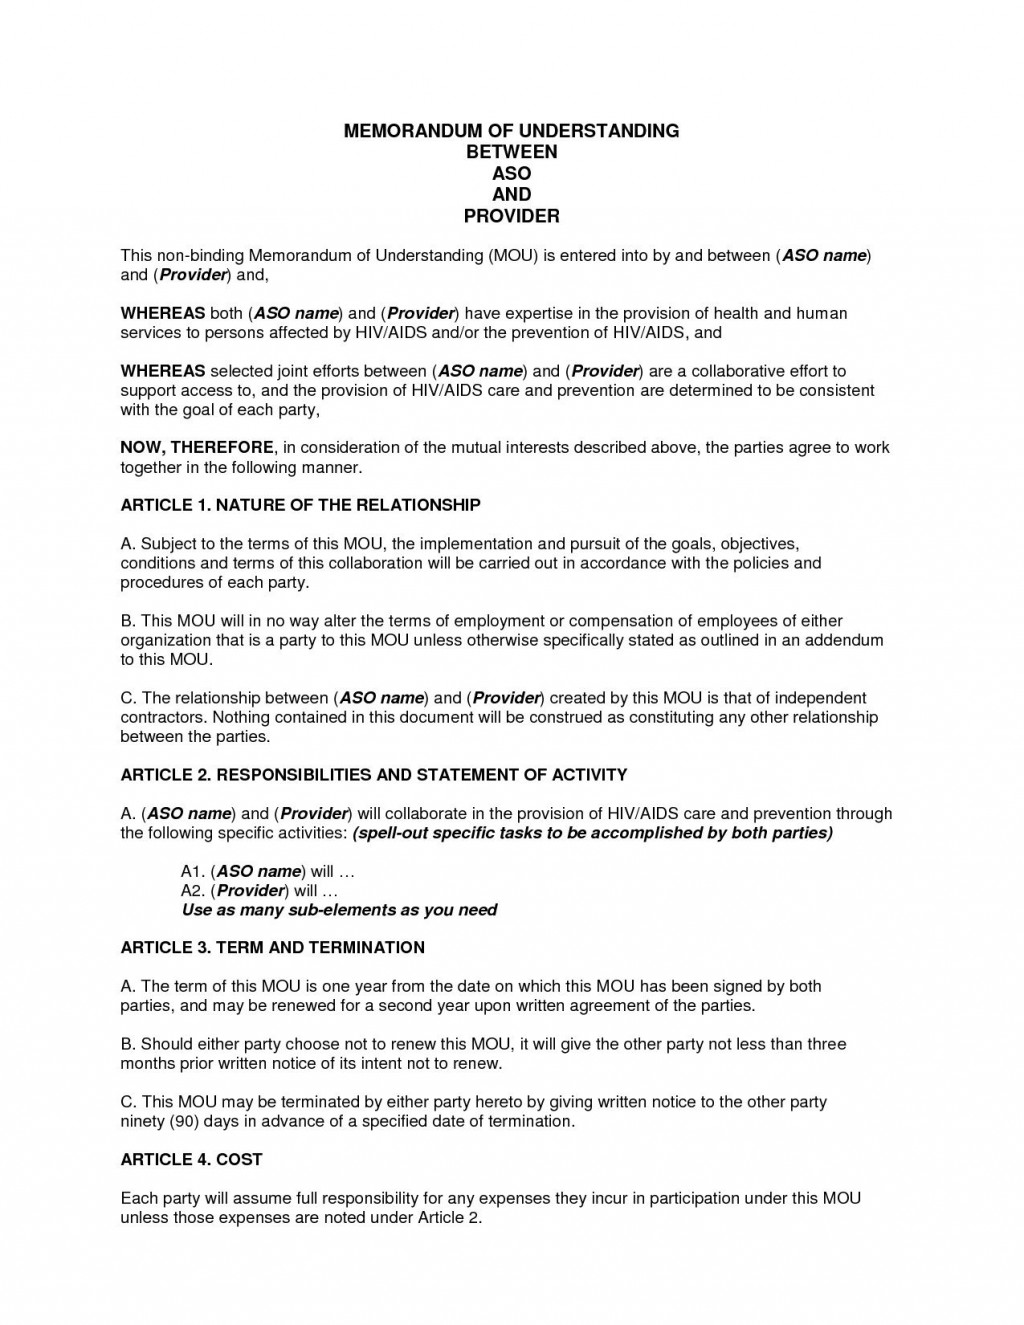 000 Phenomenal Memorandum Of Agreement Template Example  Templates Sample Tagalog South Africa Philippine DocLarge